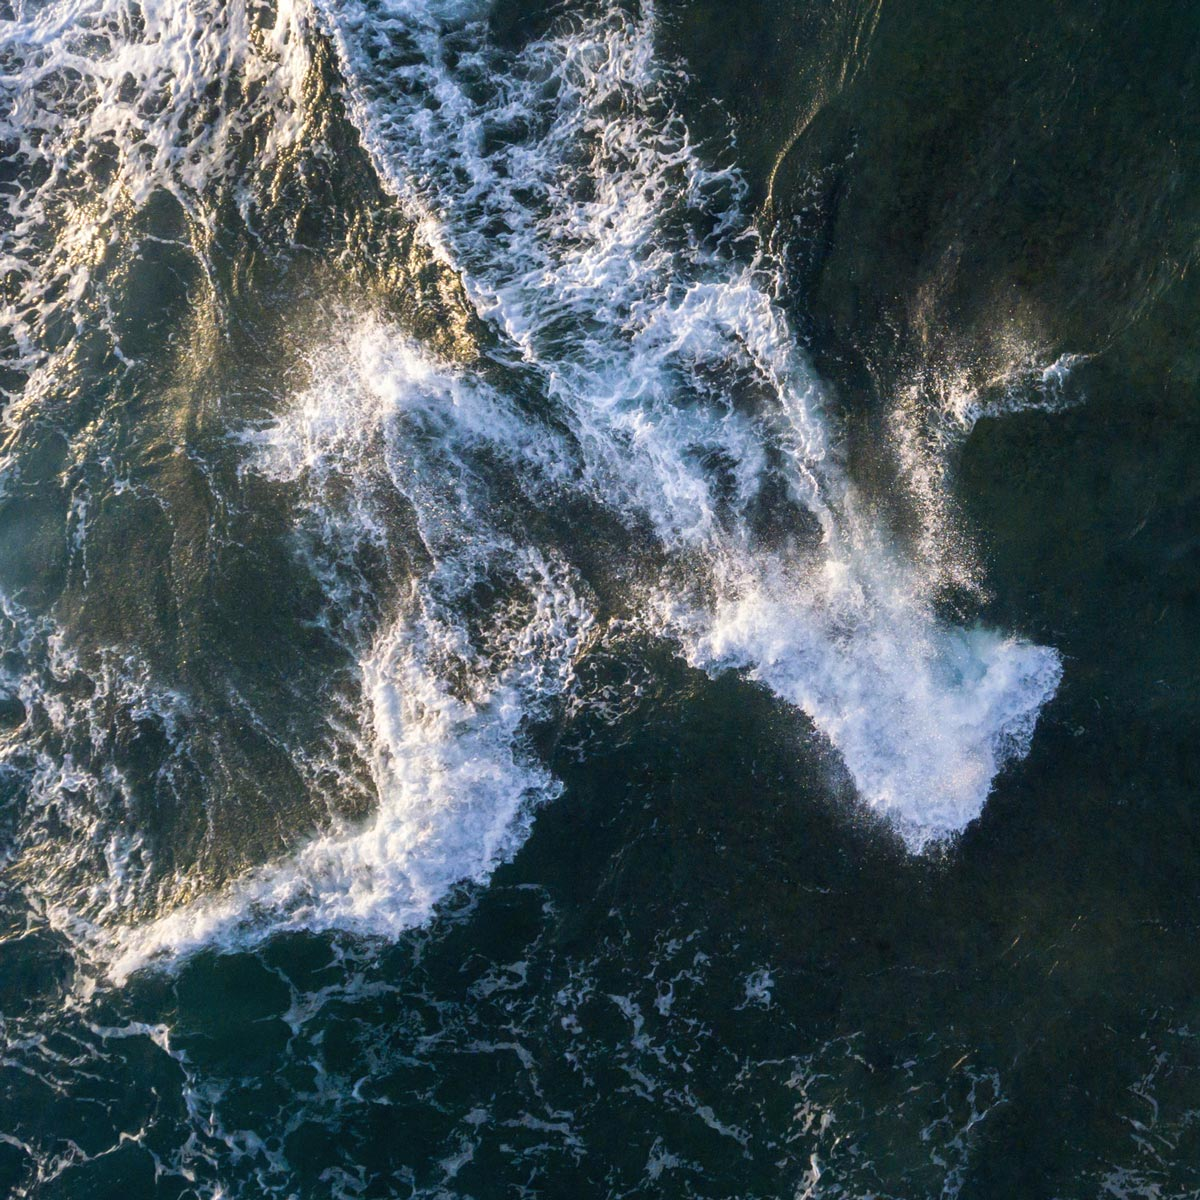 Photo by Christian Schaffer of waves shot from over the ocean